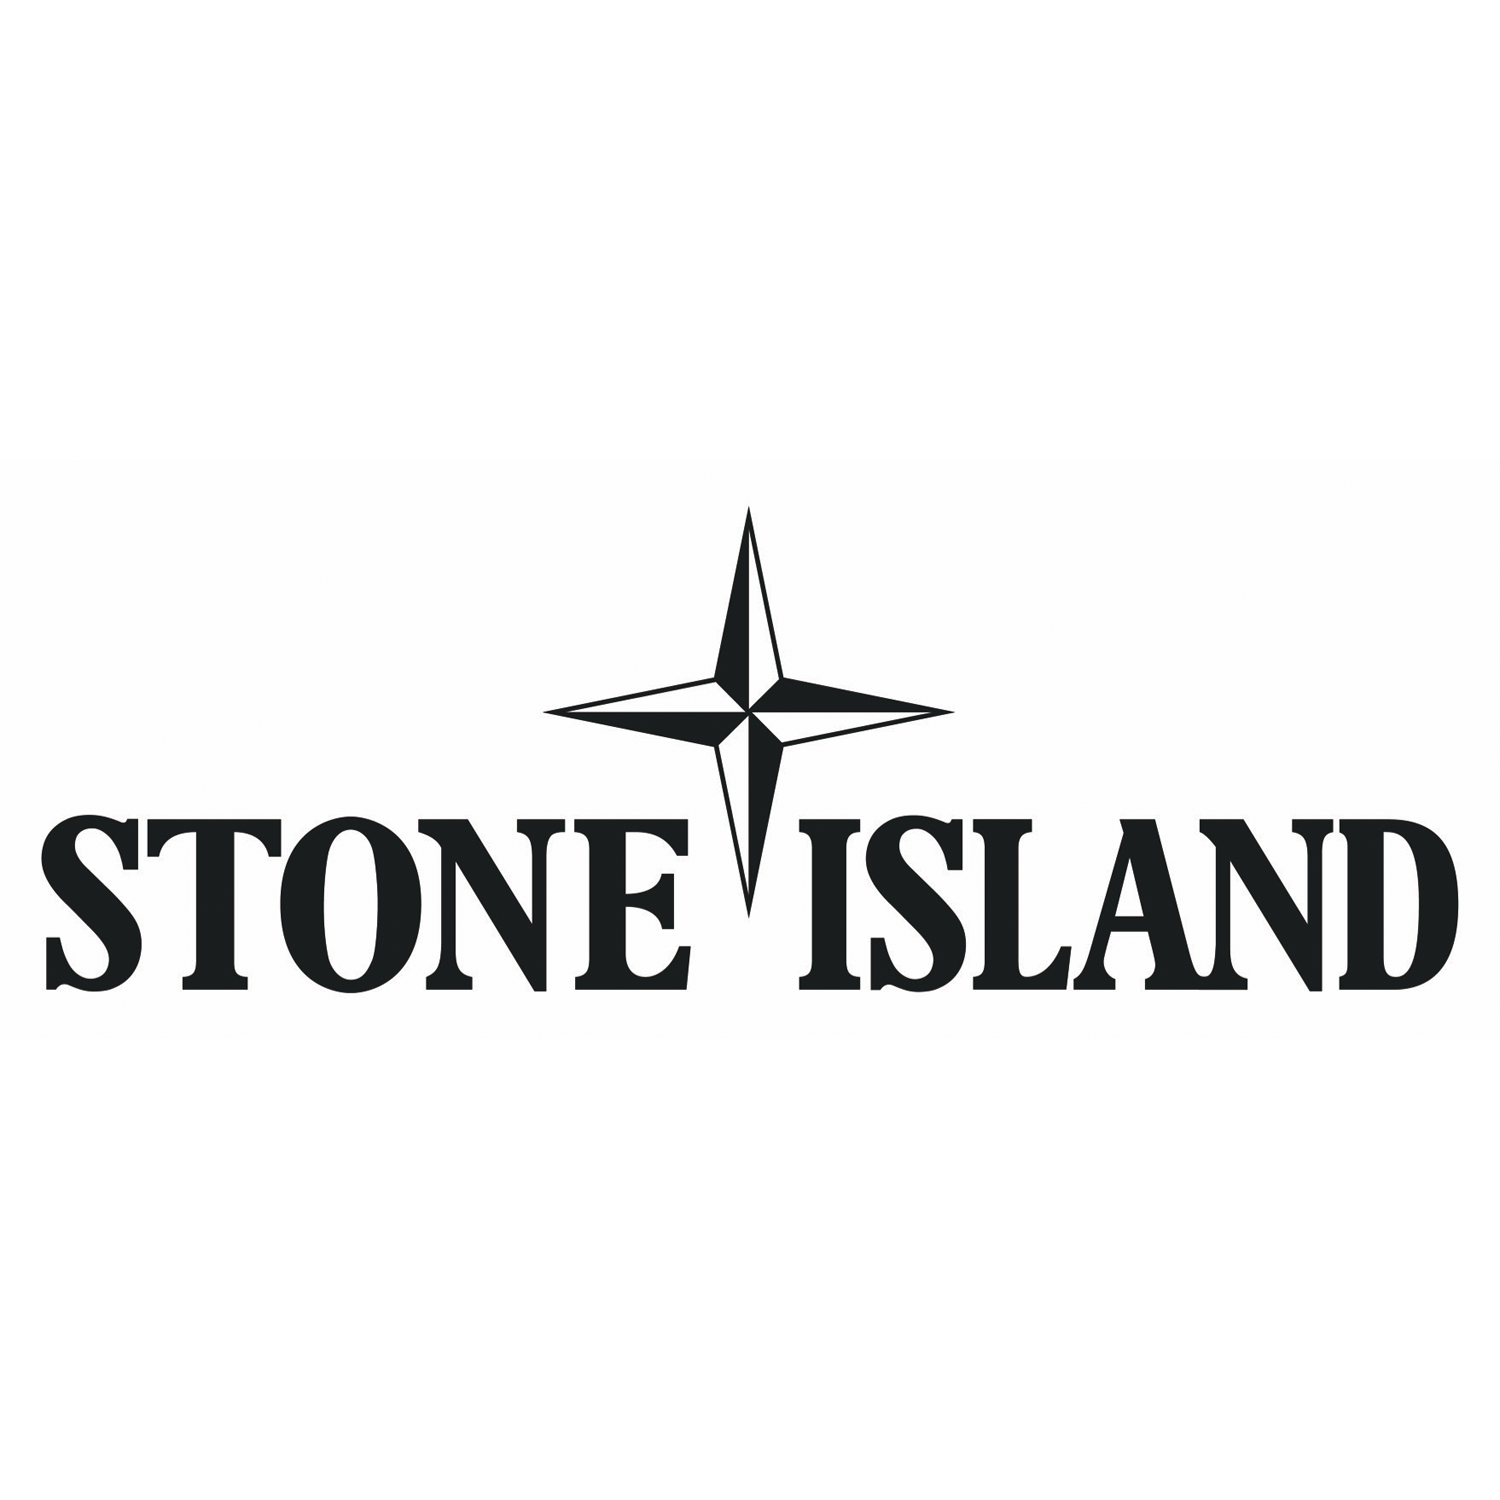 STONE ISLAND.png